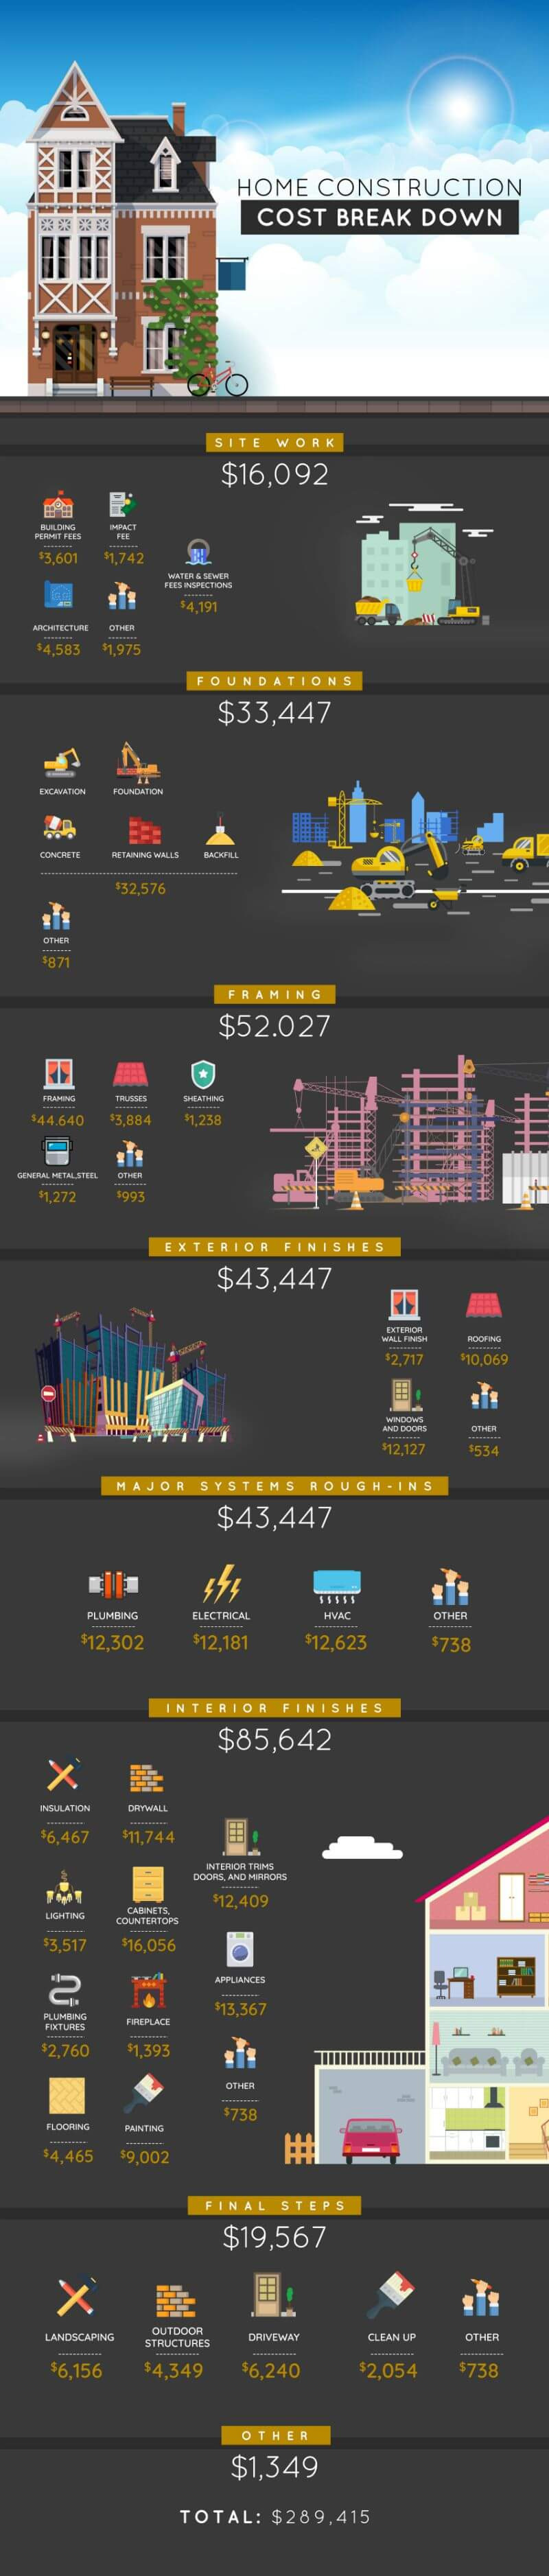 Most Affordable Way to Build A Home Awesome How Much It Costs to Build A House Infographic